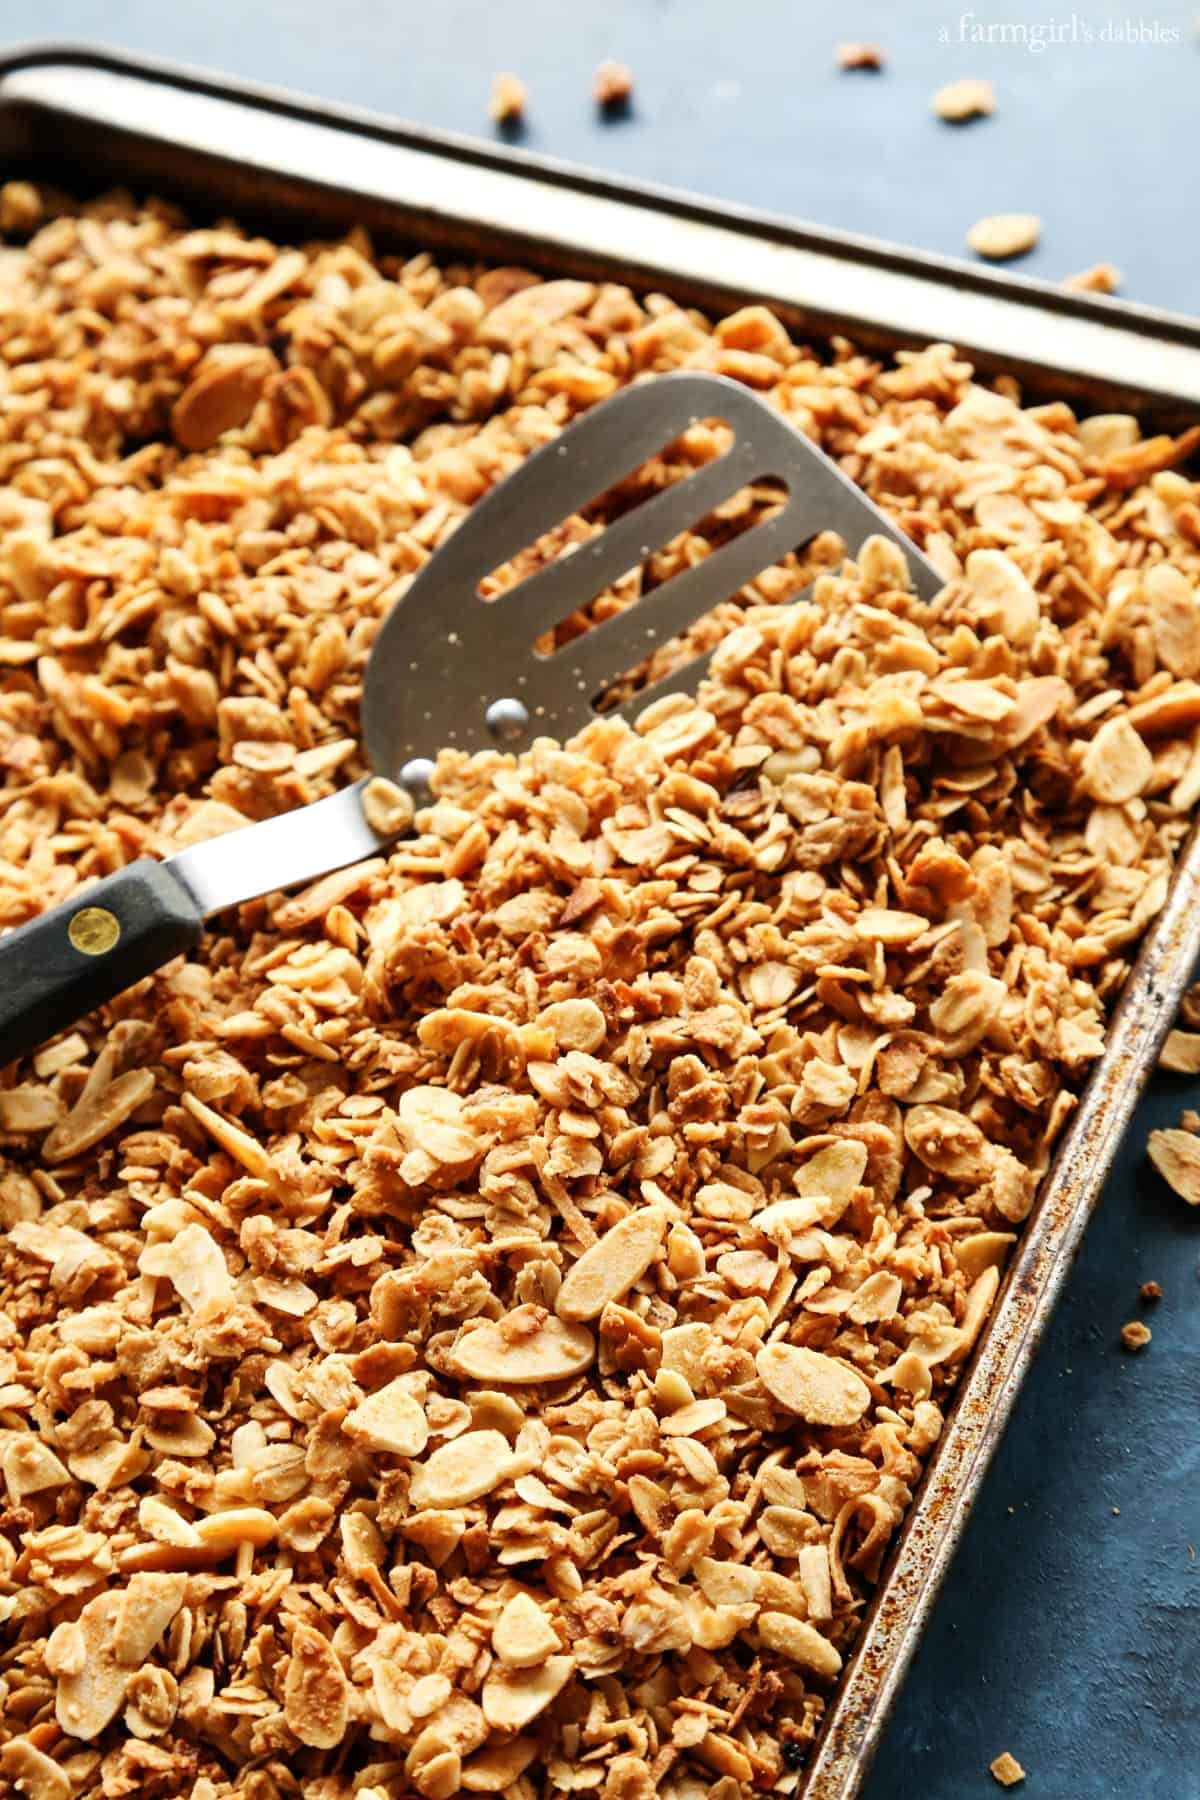 Homemade Almond Coconut Granola from afarmgirlsdabbles.com